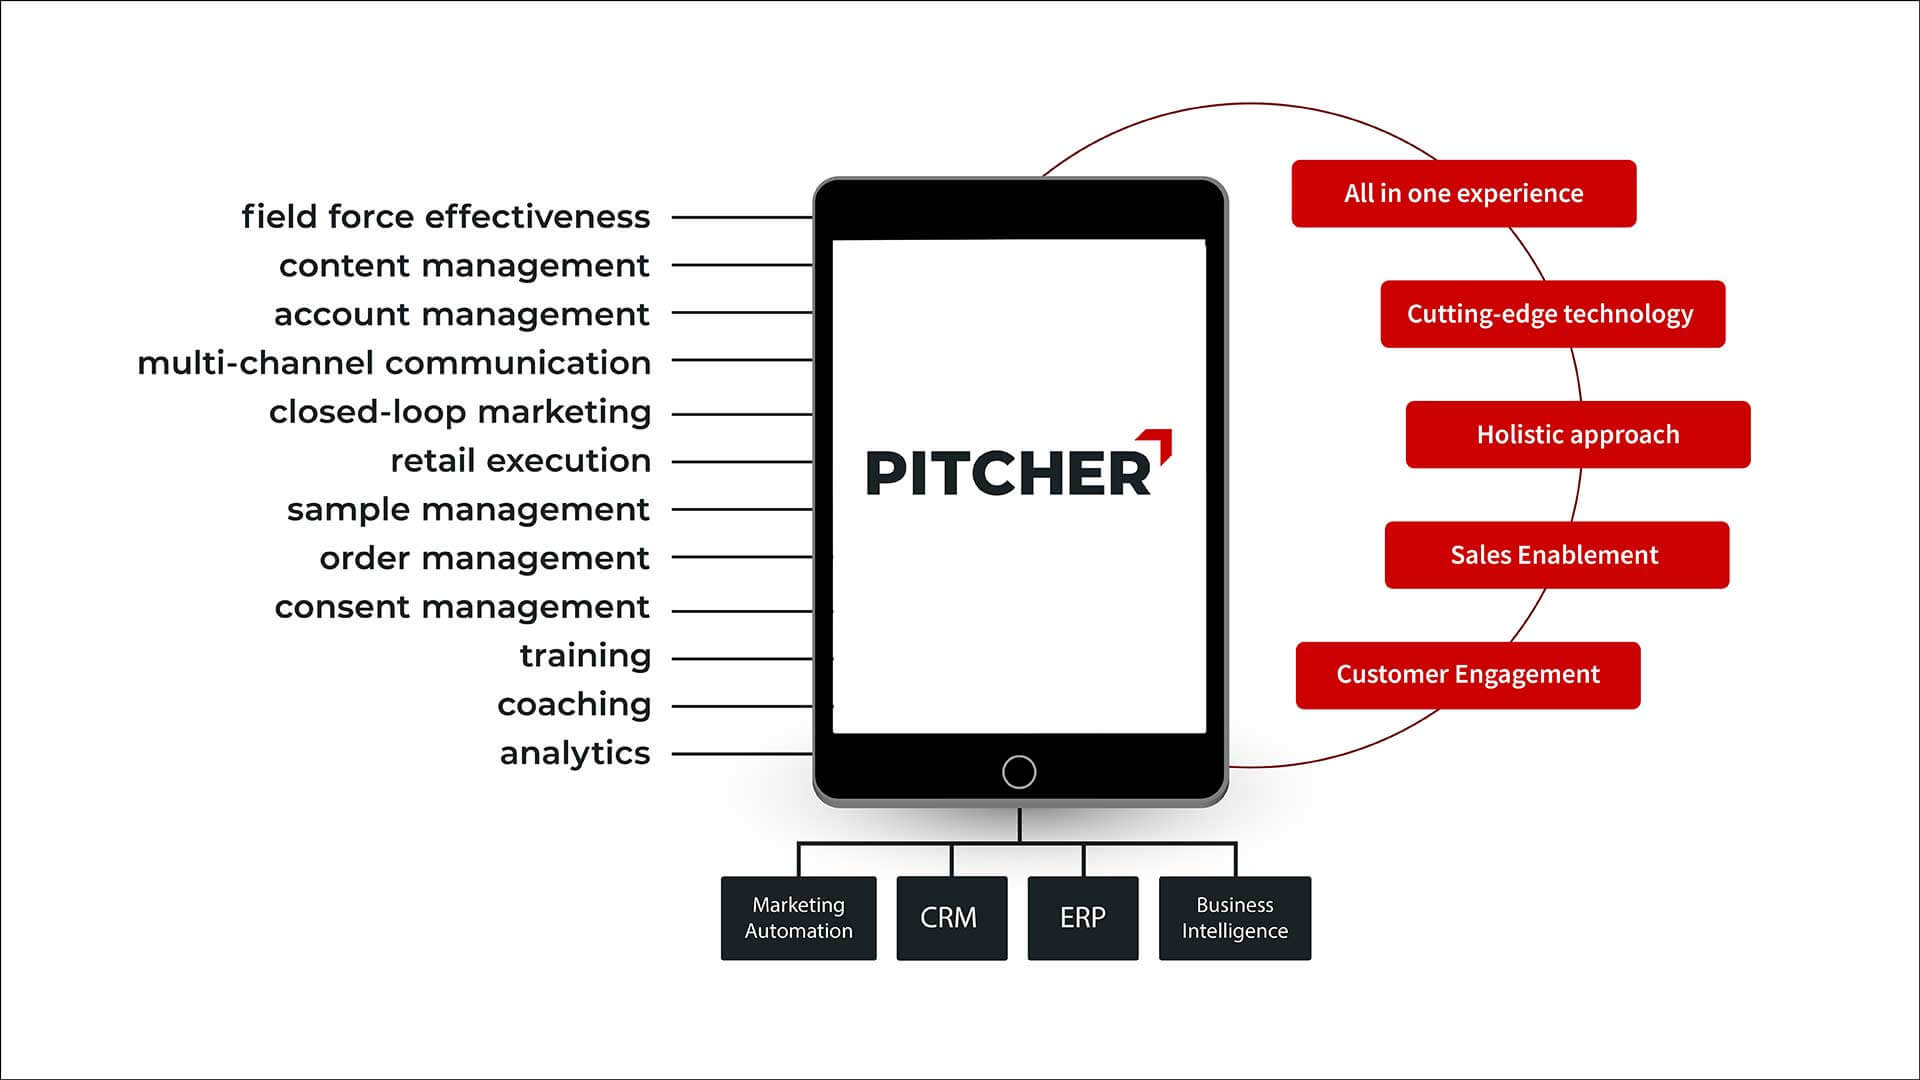 The Pitcher SuperApp for Sales Enablement